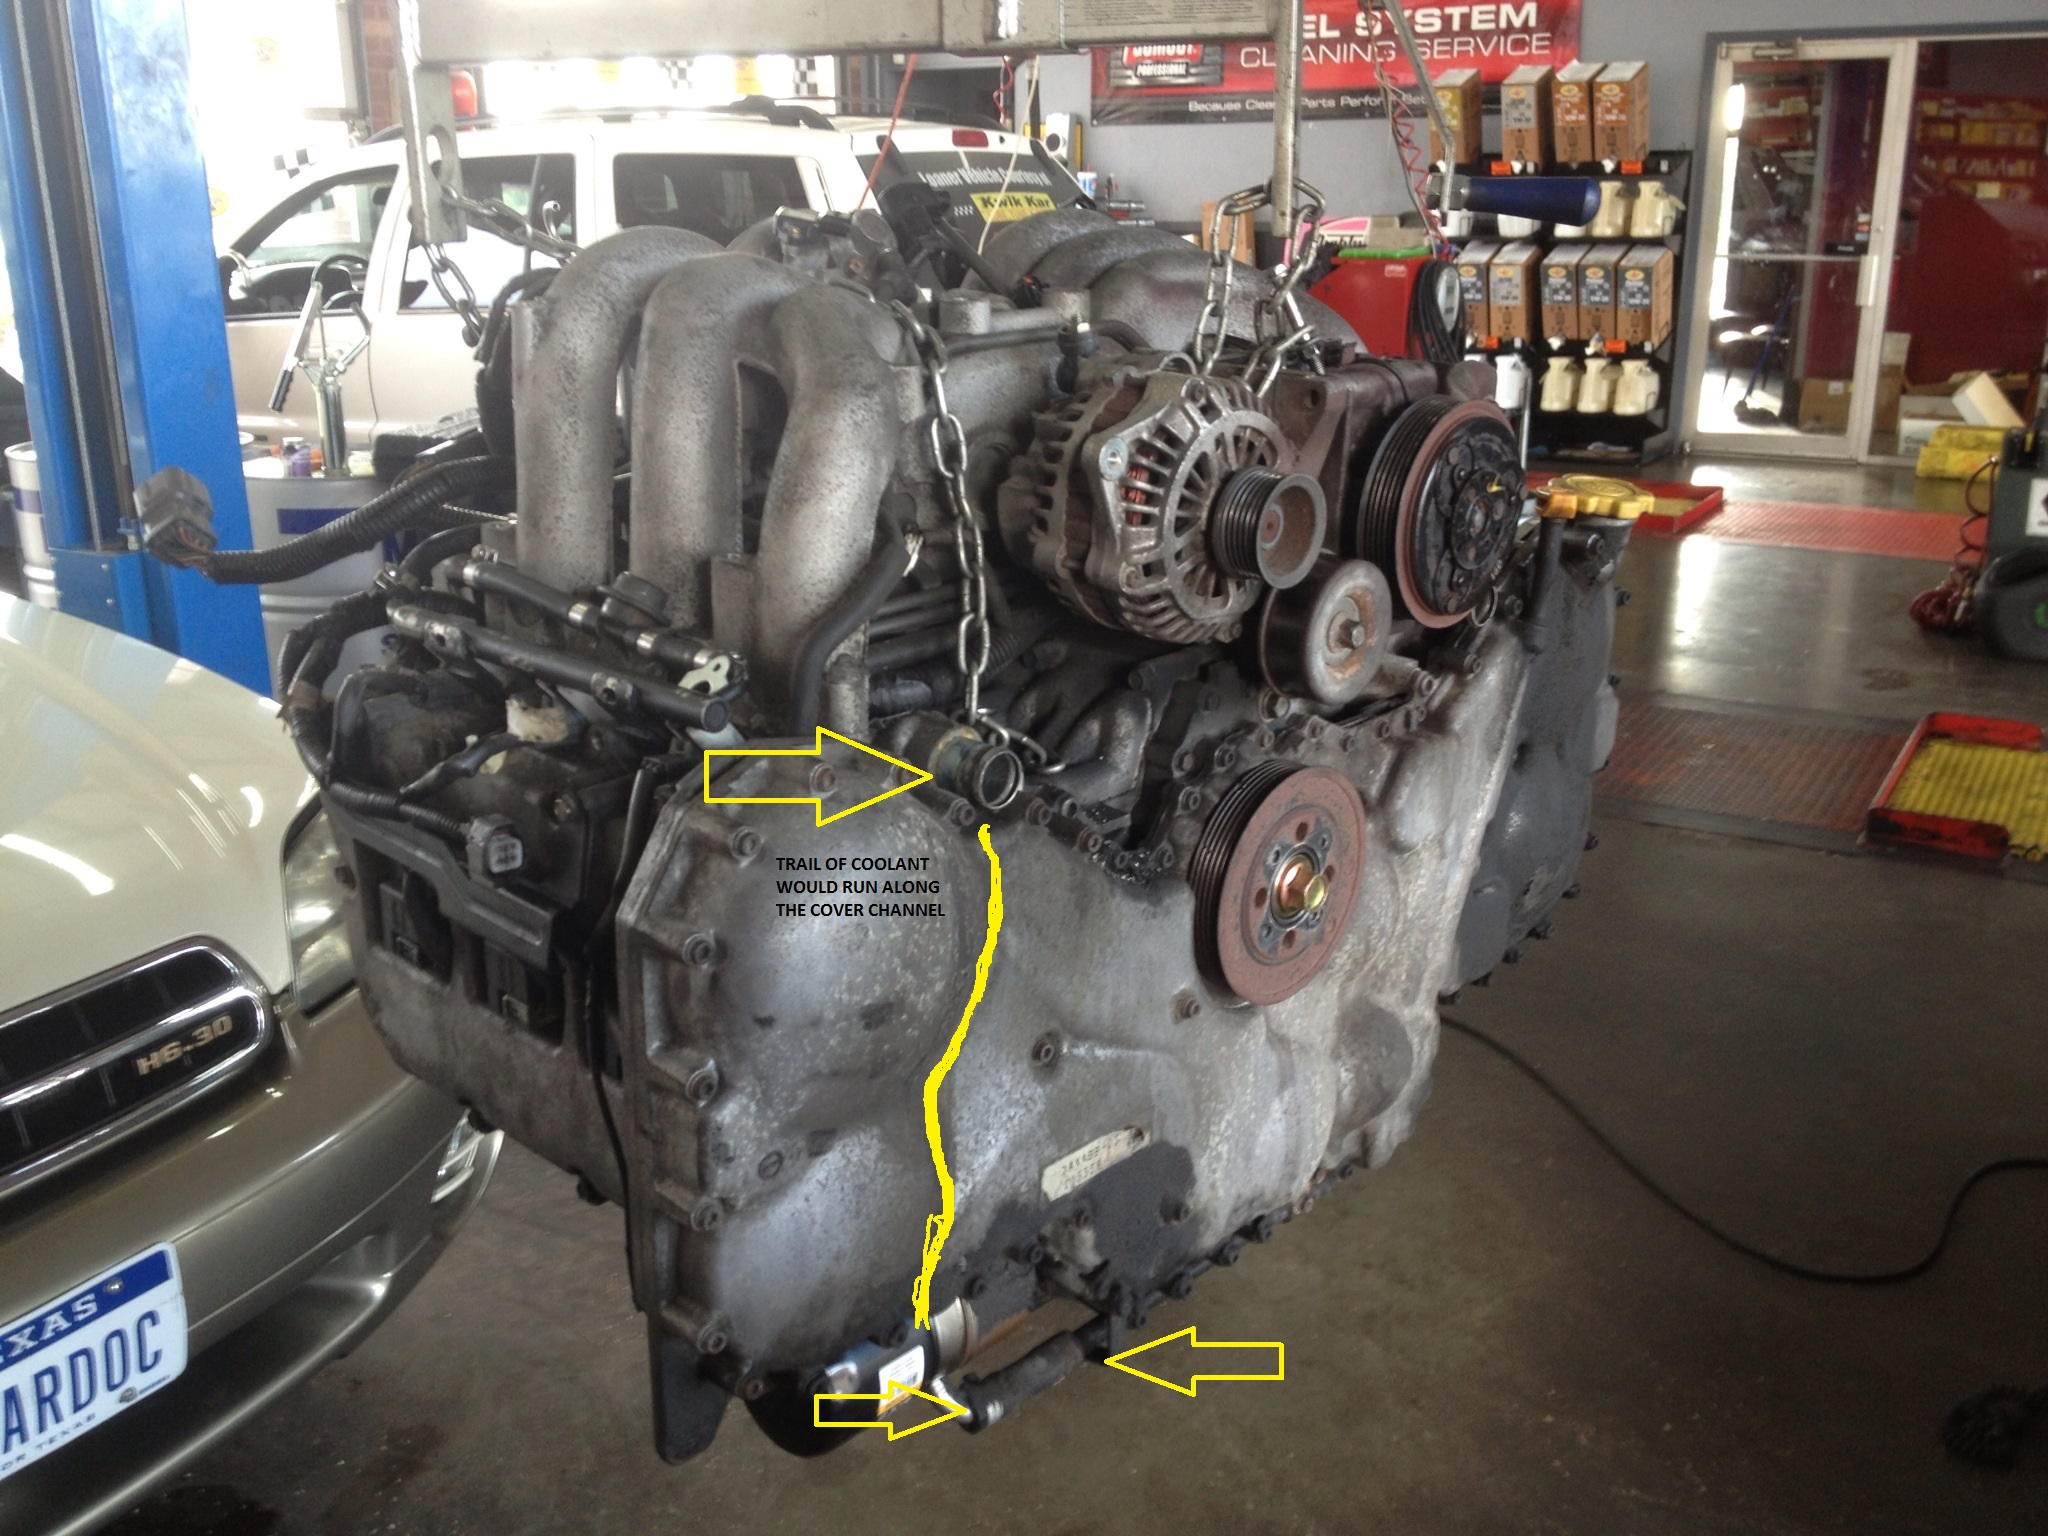 03' Outback, H6 Water Pump Issue? - Subaru Outback - Subaru Outback Forums